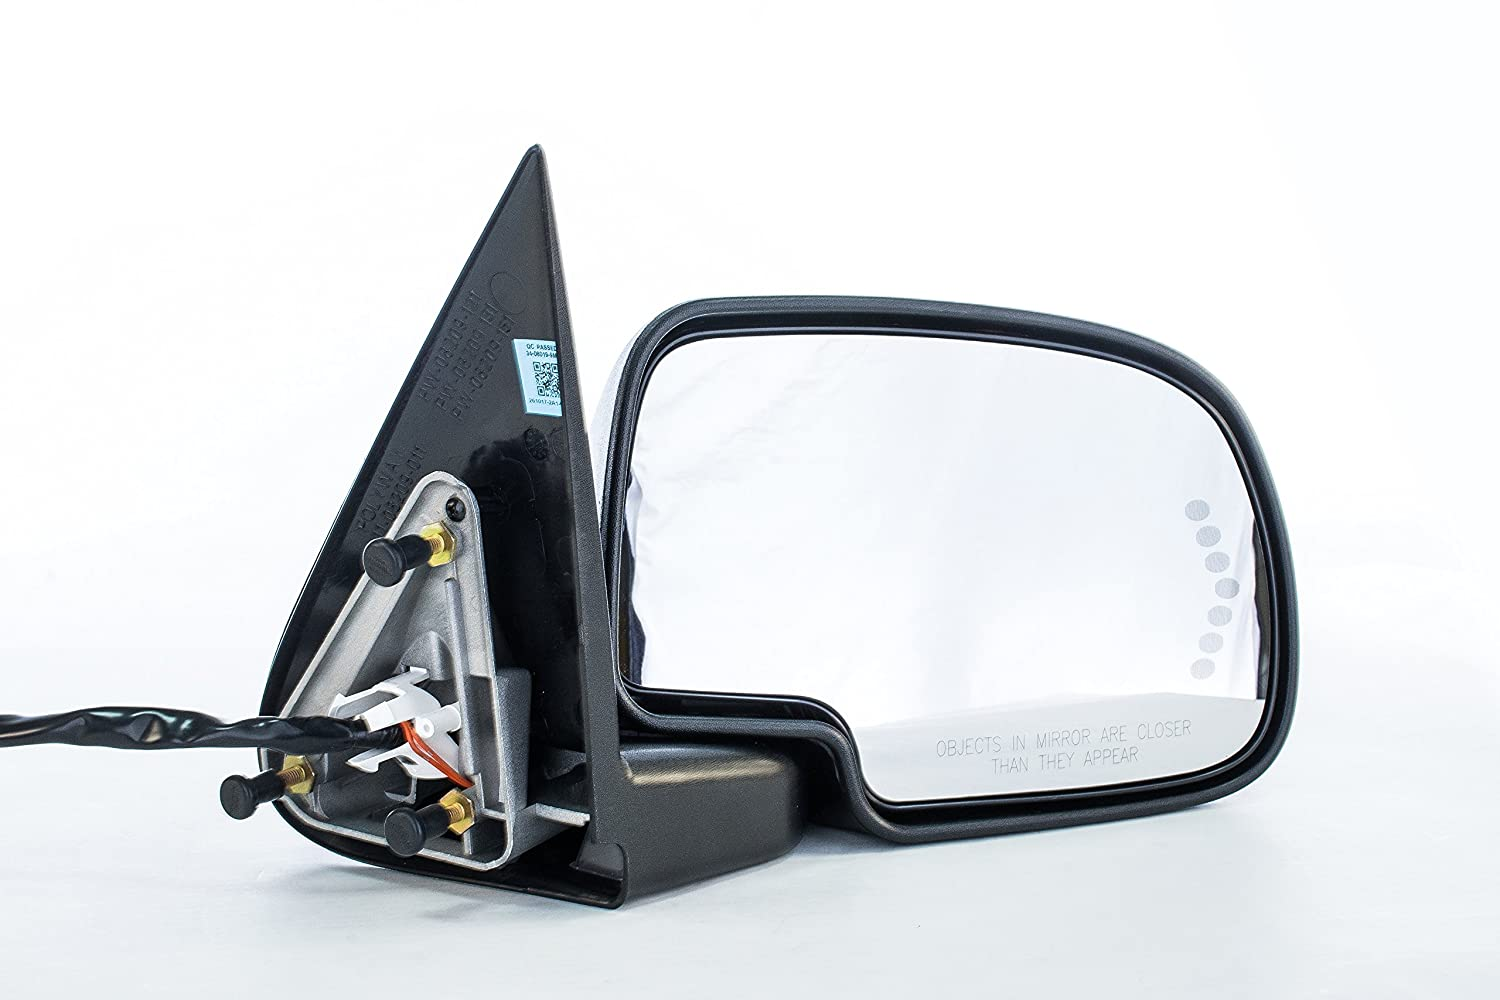 Right Passenger Side Door Mirror Heated Power-Folding for Chevy Silverado Suburban Tahoe Avalanche, GMC Sierra 1500 2500 3500 Yukon XL (2000 2001 2002 2003 2004 2005 2006 2007) GM1321373 Dependable Direct